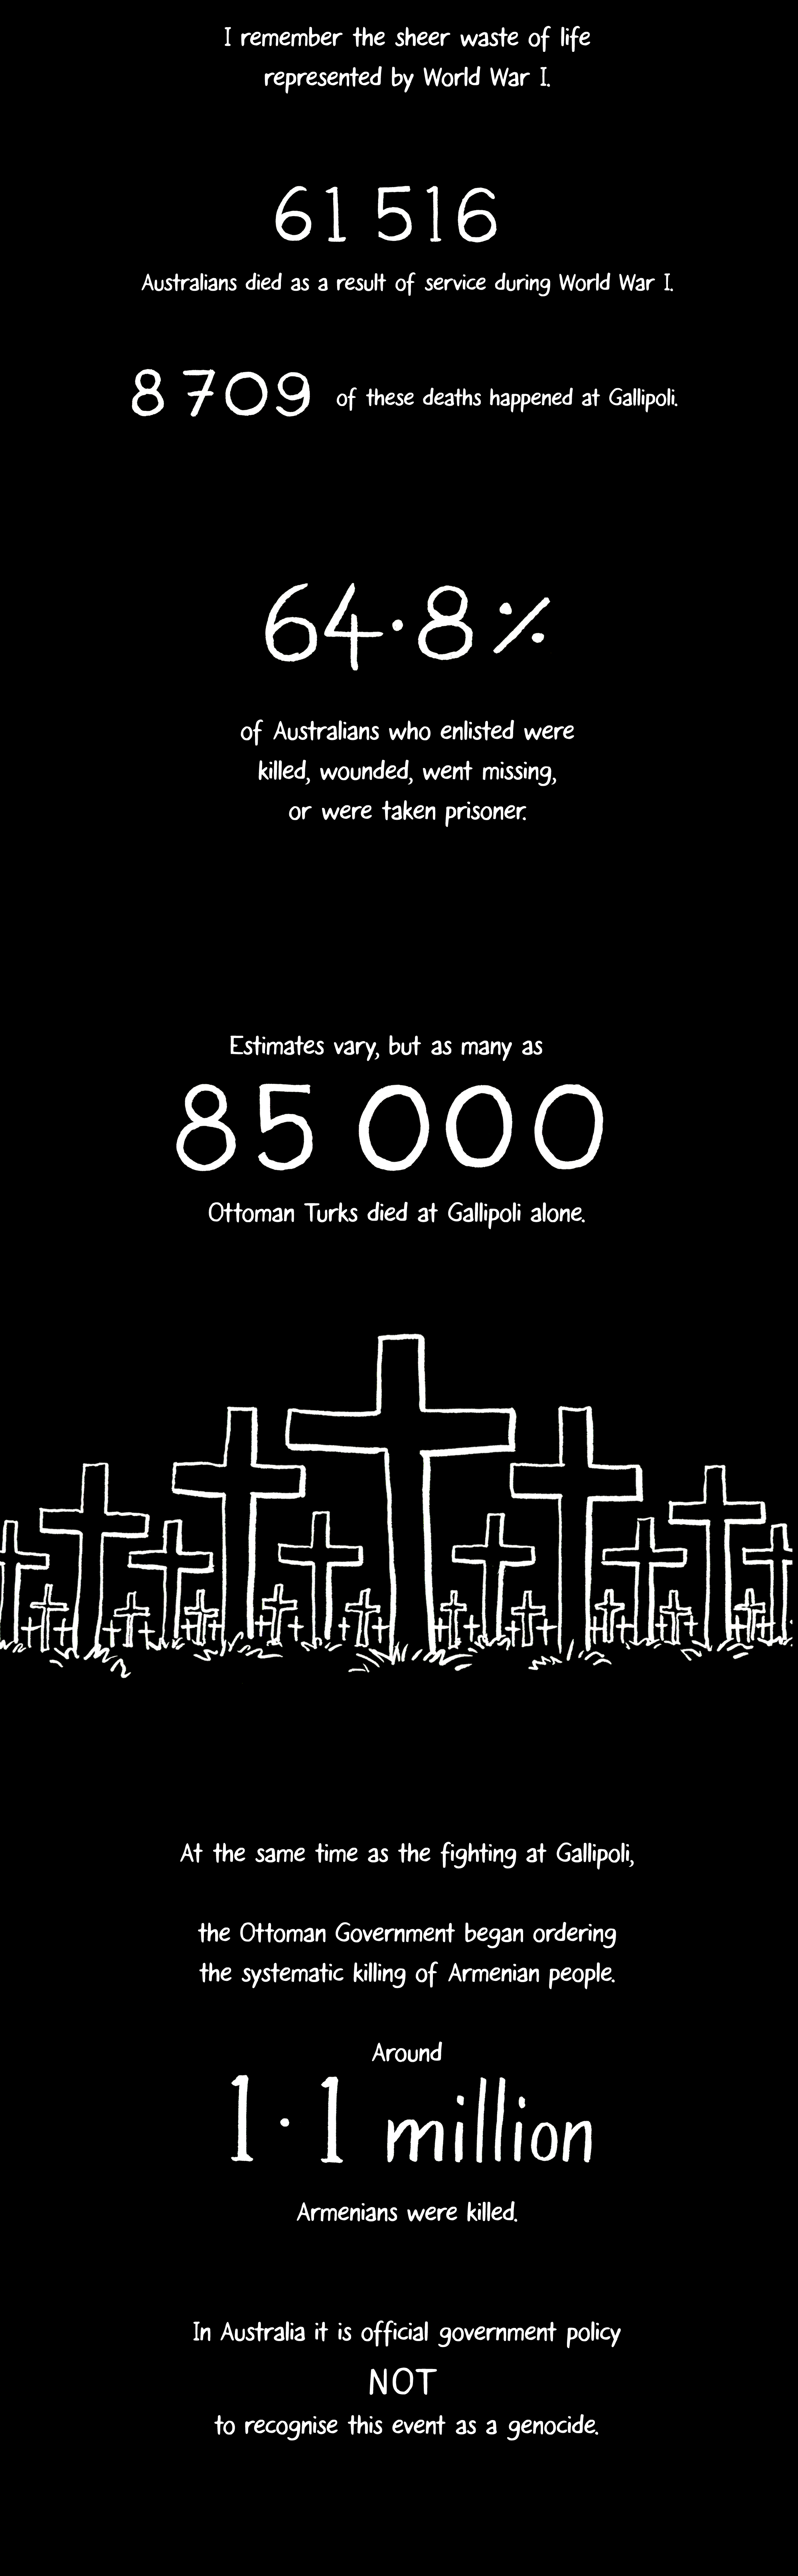 The Turkish death toll estimate can be found     here    .The Armenian death toll estimate appears in Geoffrey Robertson's book     'An Inconvenient genocide    '.For Australia's official stance on the Armenian deaths, see     this link    .